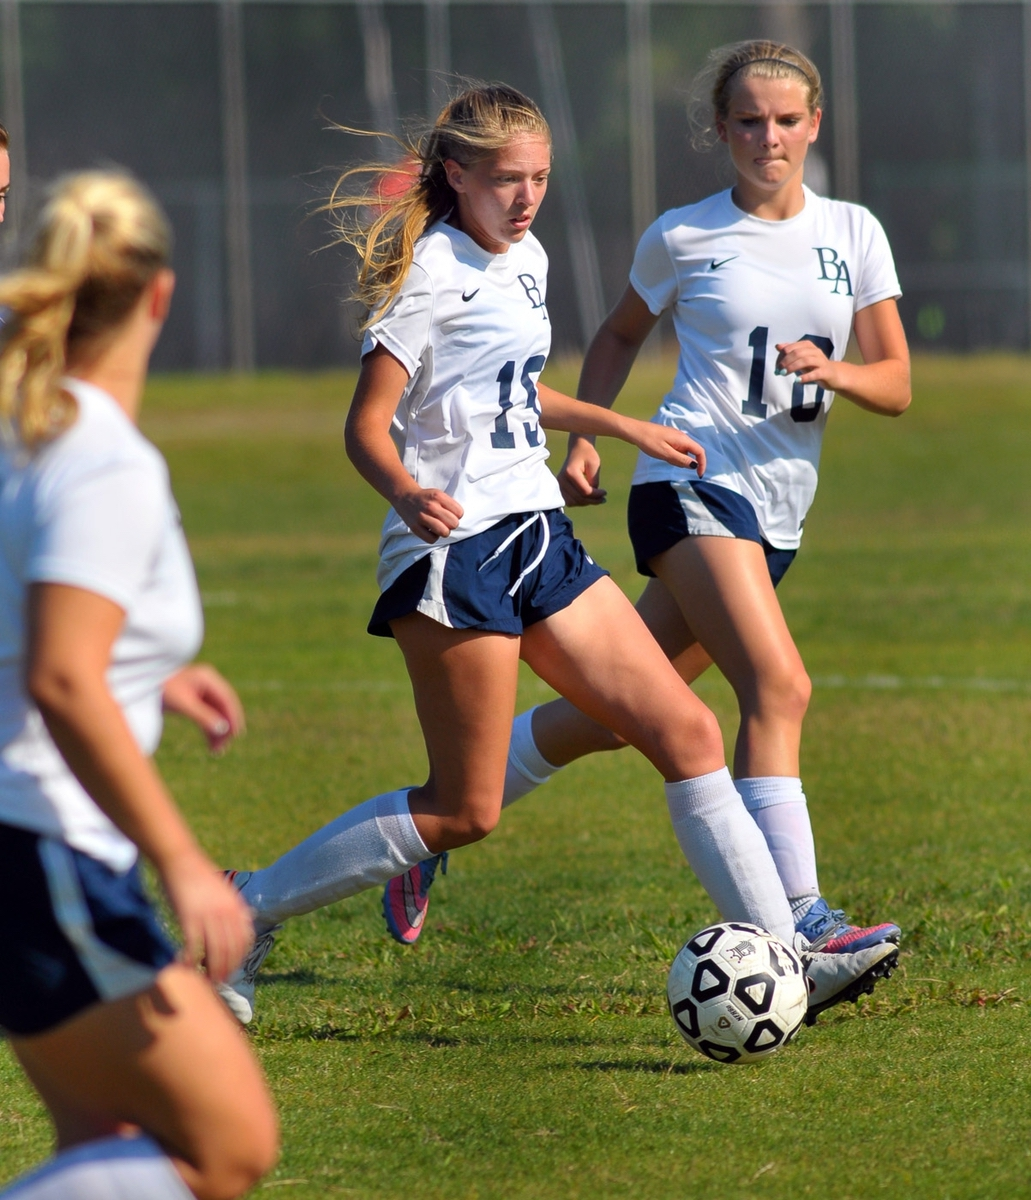 Beaufort Academy's Ally Raschella, center, gets ready to pass the ball  tip field during the first half of the first round of SCISA Girls Class A playoff game at Merritt Field. Assisting Raschella at right is Mary Alden Cooper. Photo by Bob Sofaly.